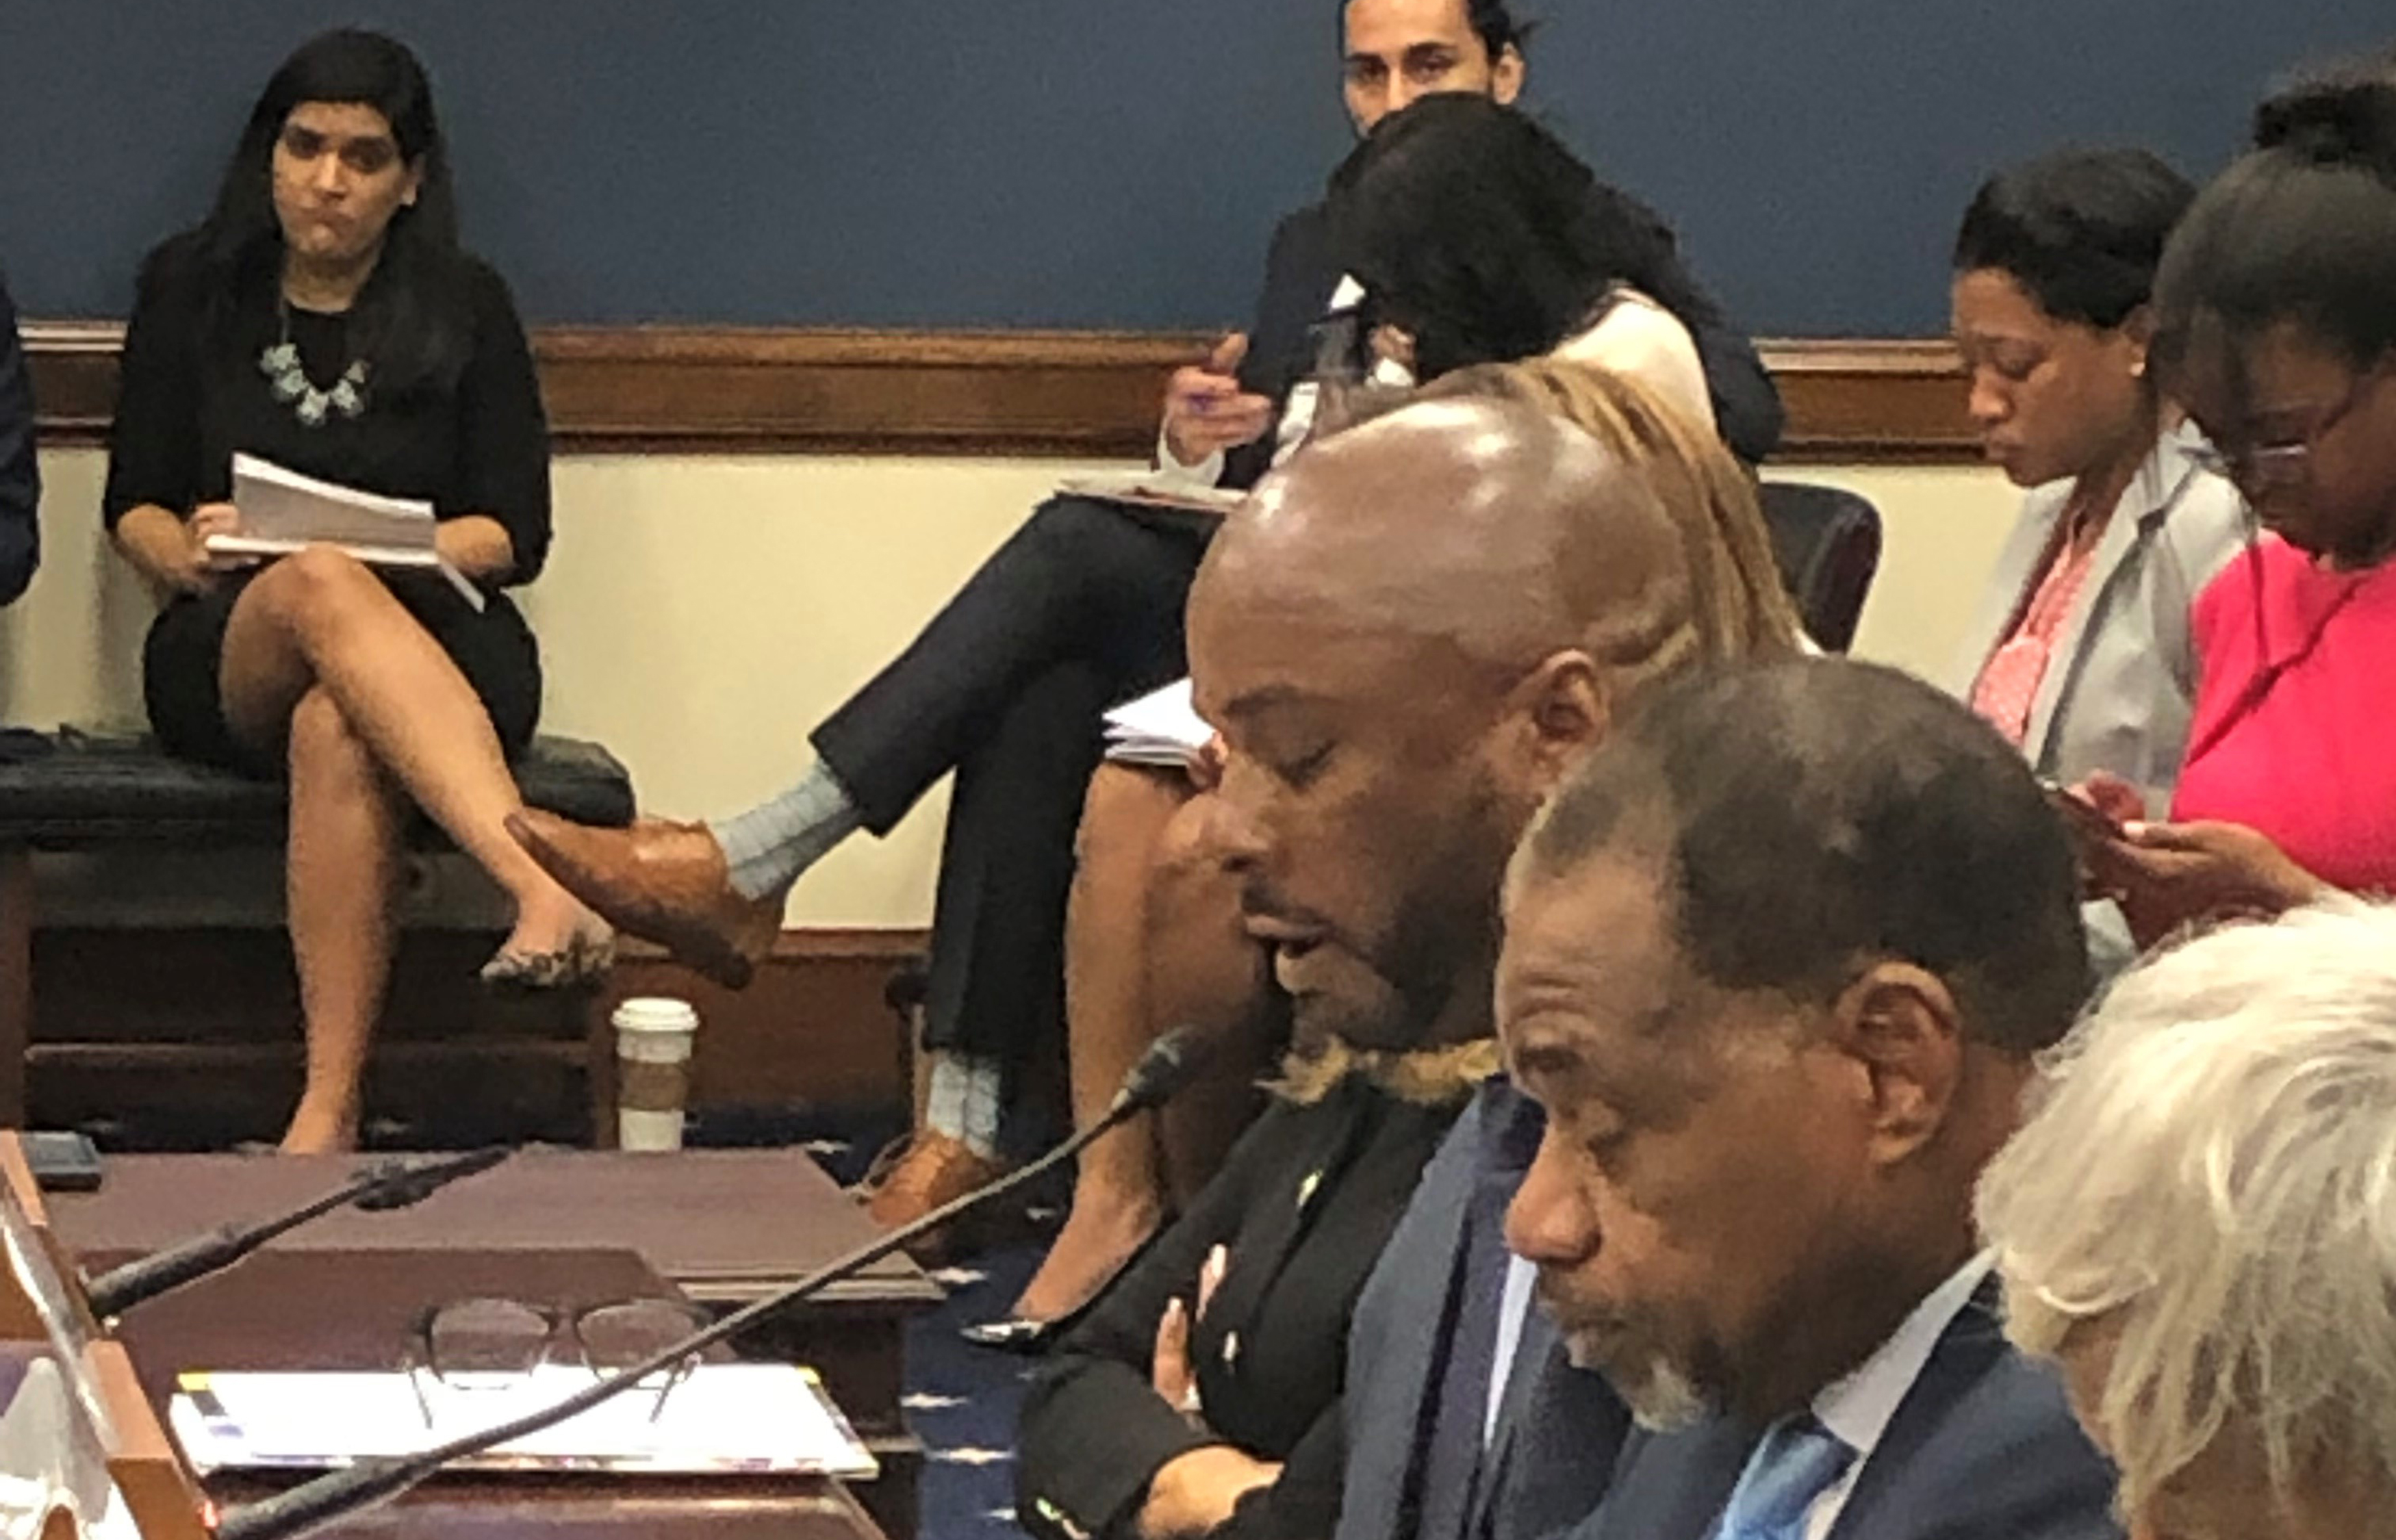 Dr. Michael Casson Jr. testifies before a U.S. House of Representative subcommittee on how the Small Business Administration could work more effectively with Historically Black Colleges and Universities.